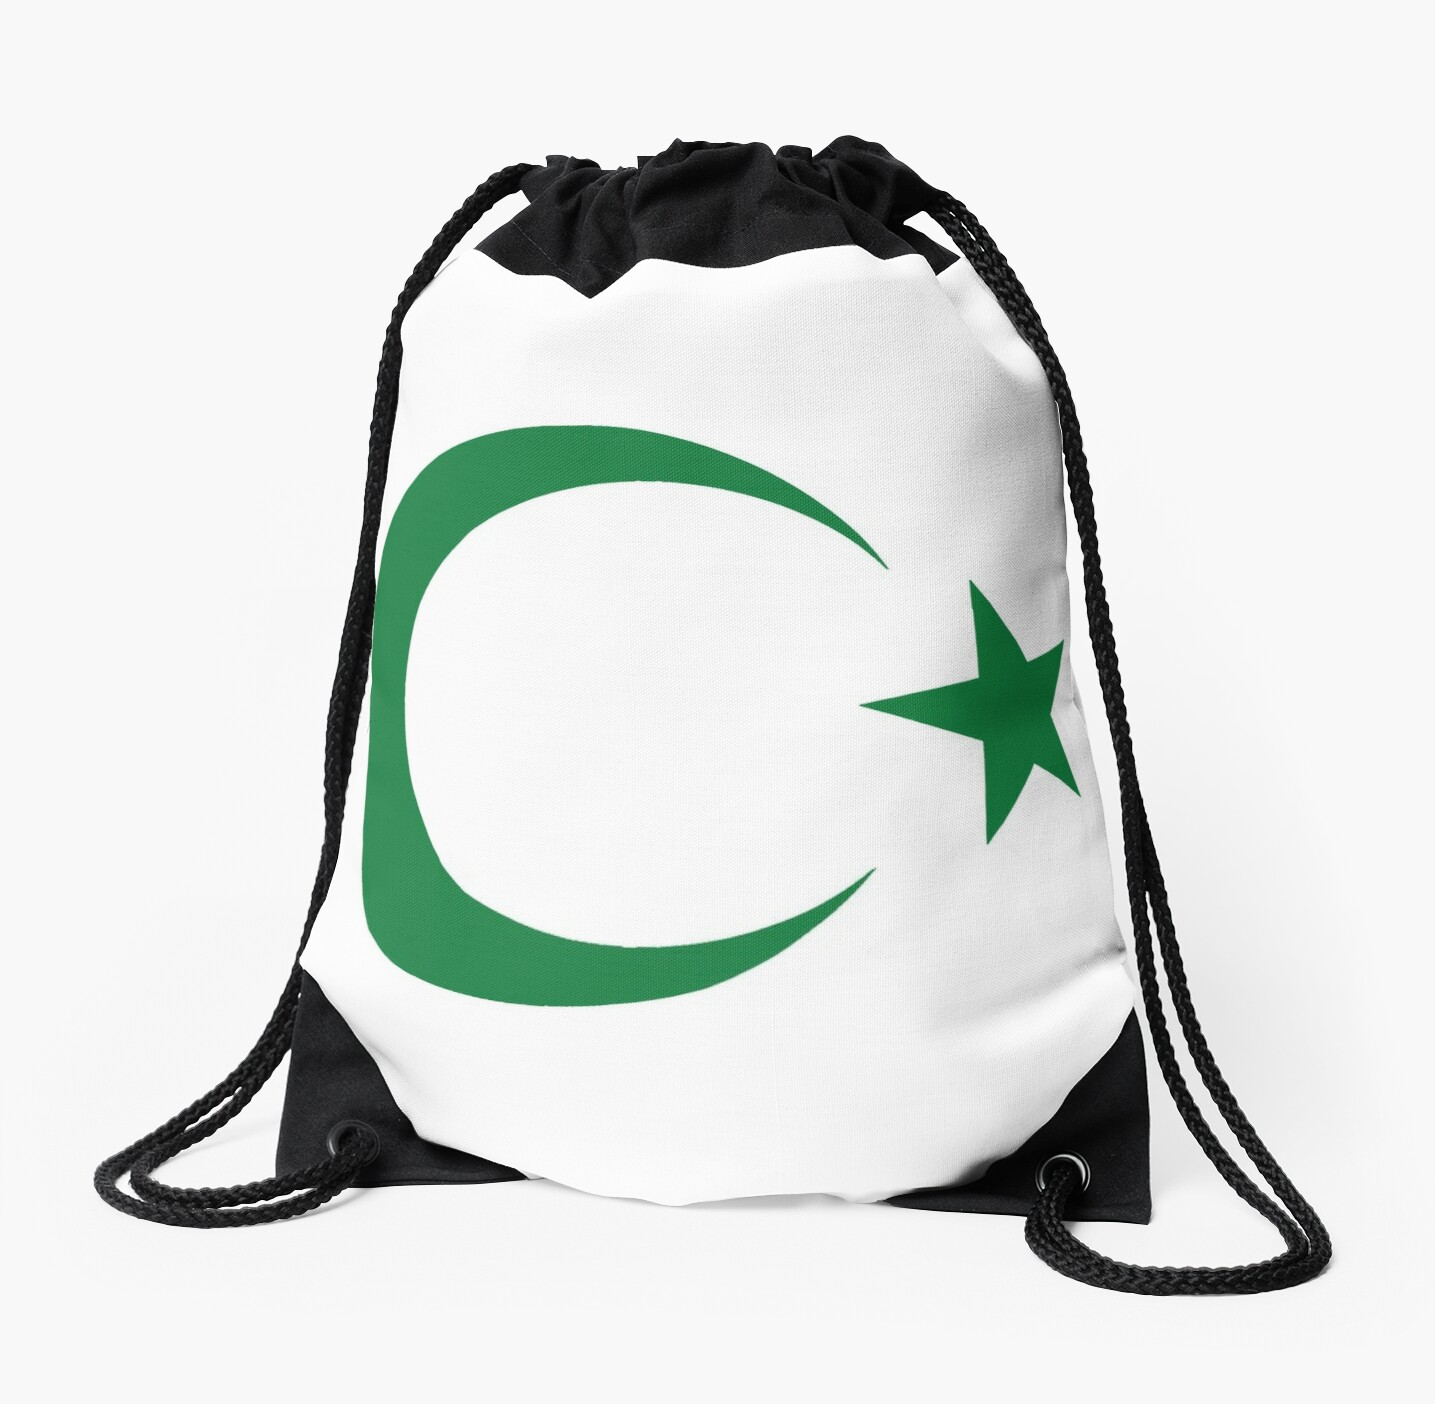 Pakistan, Pakistani, Star and crescent, Islam, Islamic, Ottoman ...